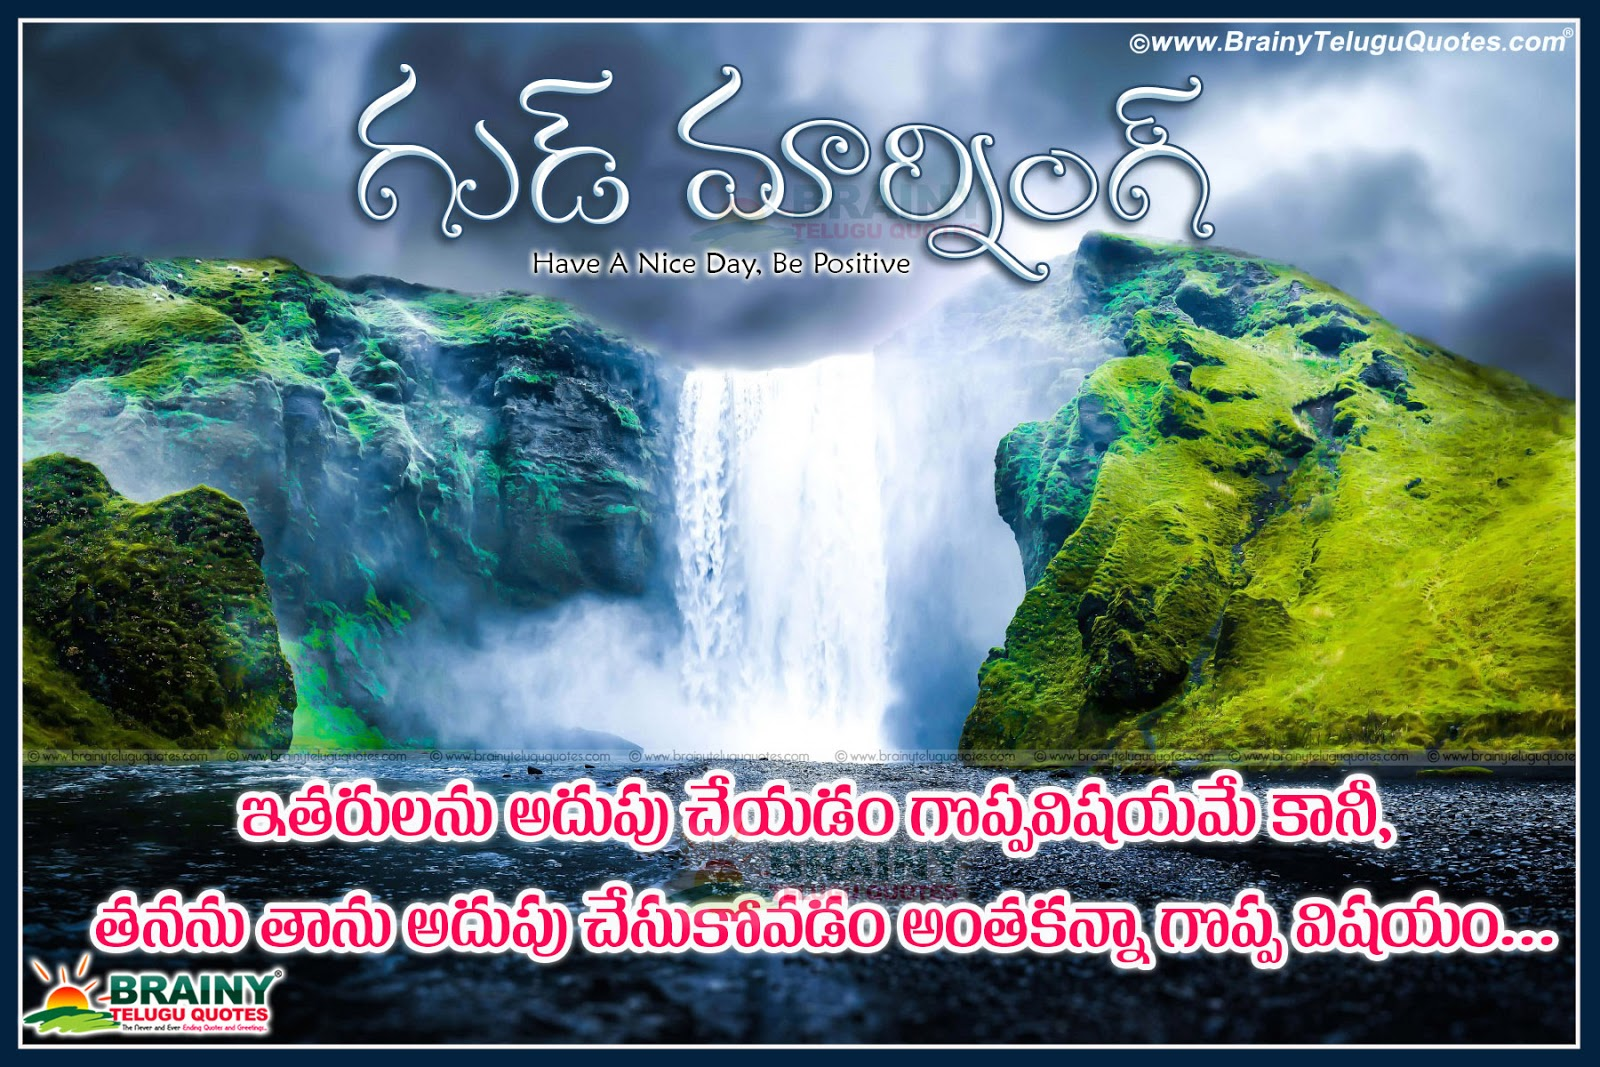 Good Morning Quotes With Nature : Good morning images with nature in telugu wallpaper